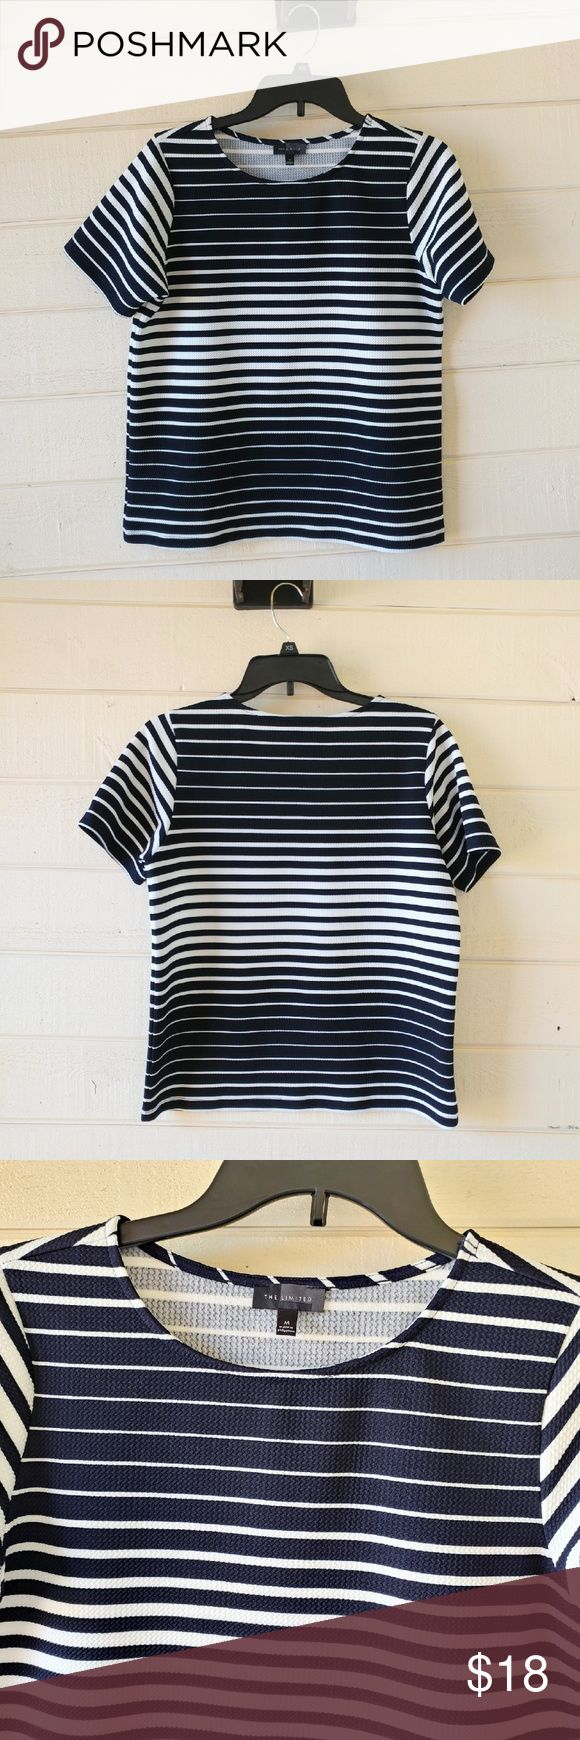 The Limited Striped Short Sleeves Top Size M Great item. This top looks like new! Different size stripes create an illusion of a great figure!  Size: M Color: Navy Blue and White Stripes Condition: Look like new Materials: 96% Polyster 4%Spandex  ?? Reasonable offers are accepted ?? Make a bundle and save more on shipping ?? Find me on Vinted with a lower price  ?? No trades The Limited Tops Tees - Short Sleeve